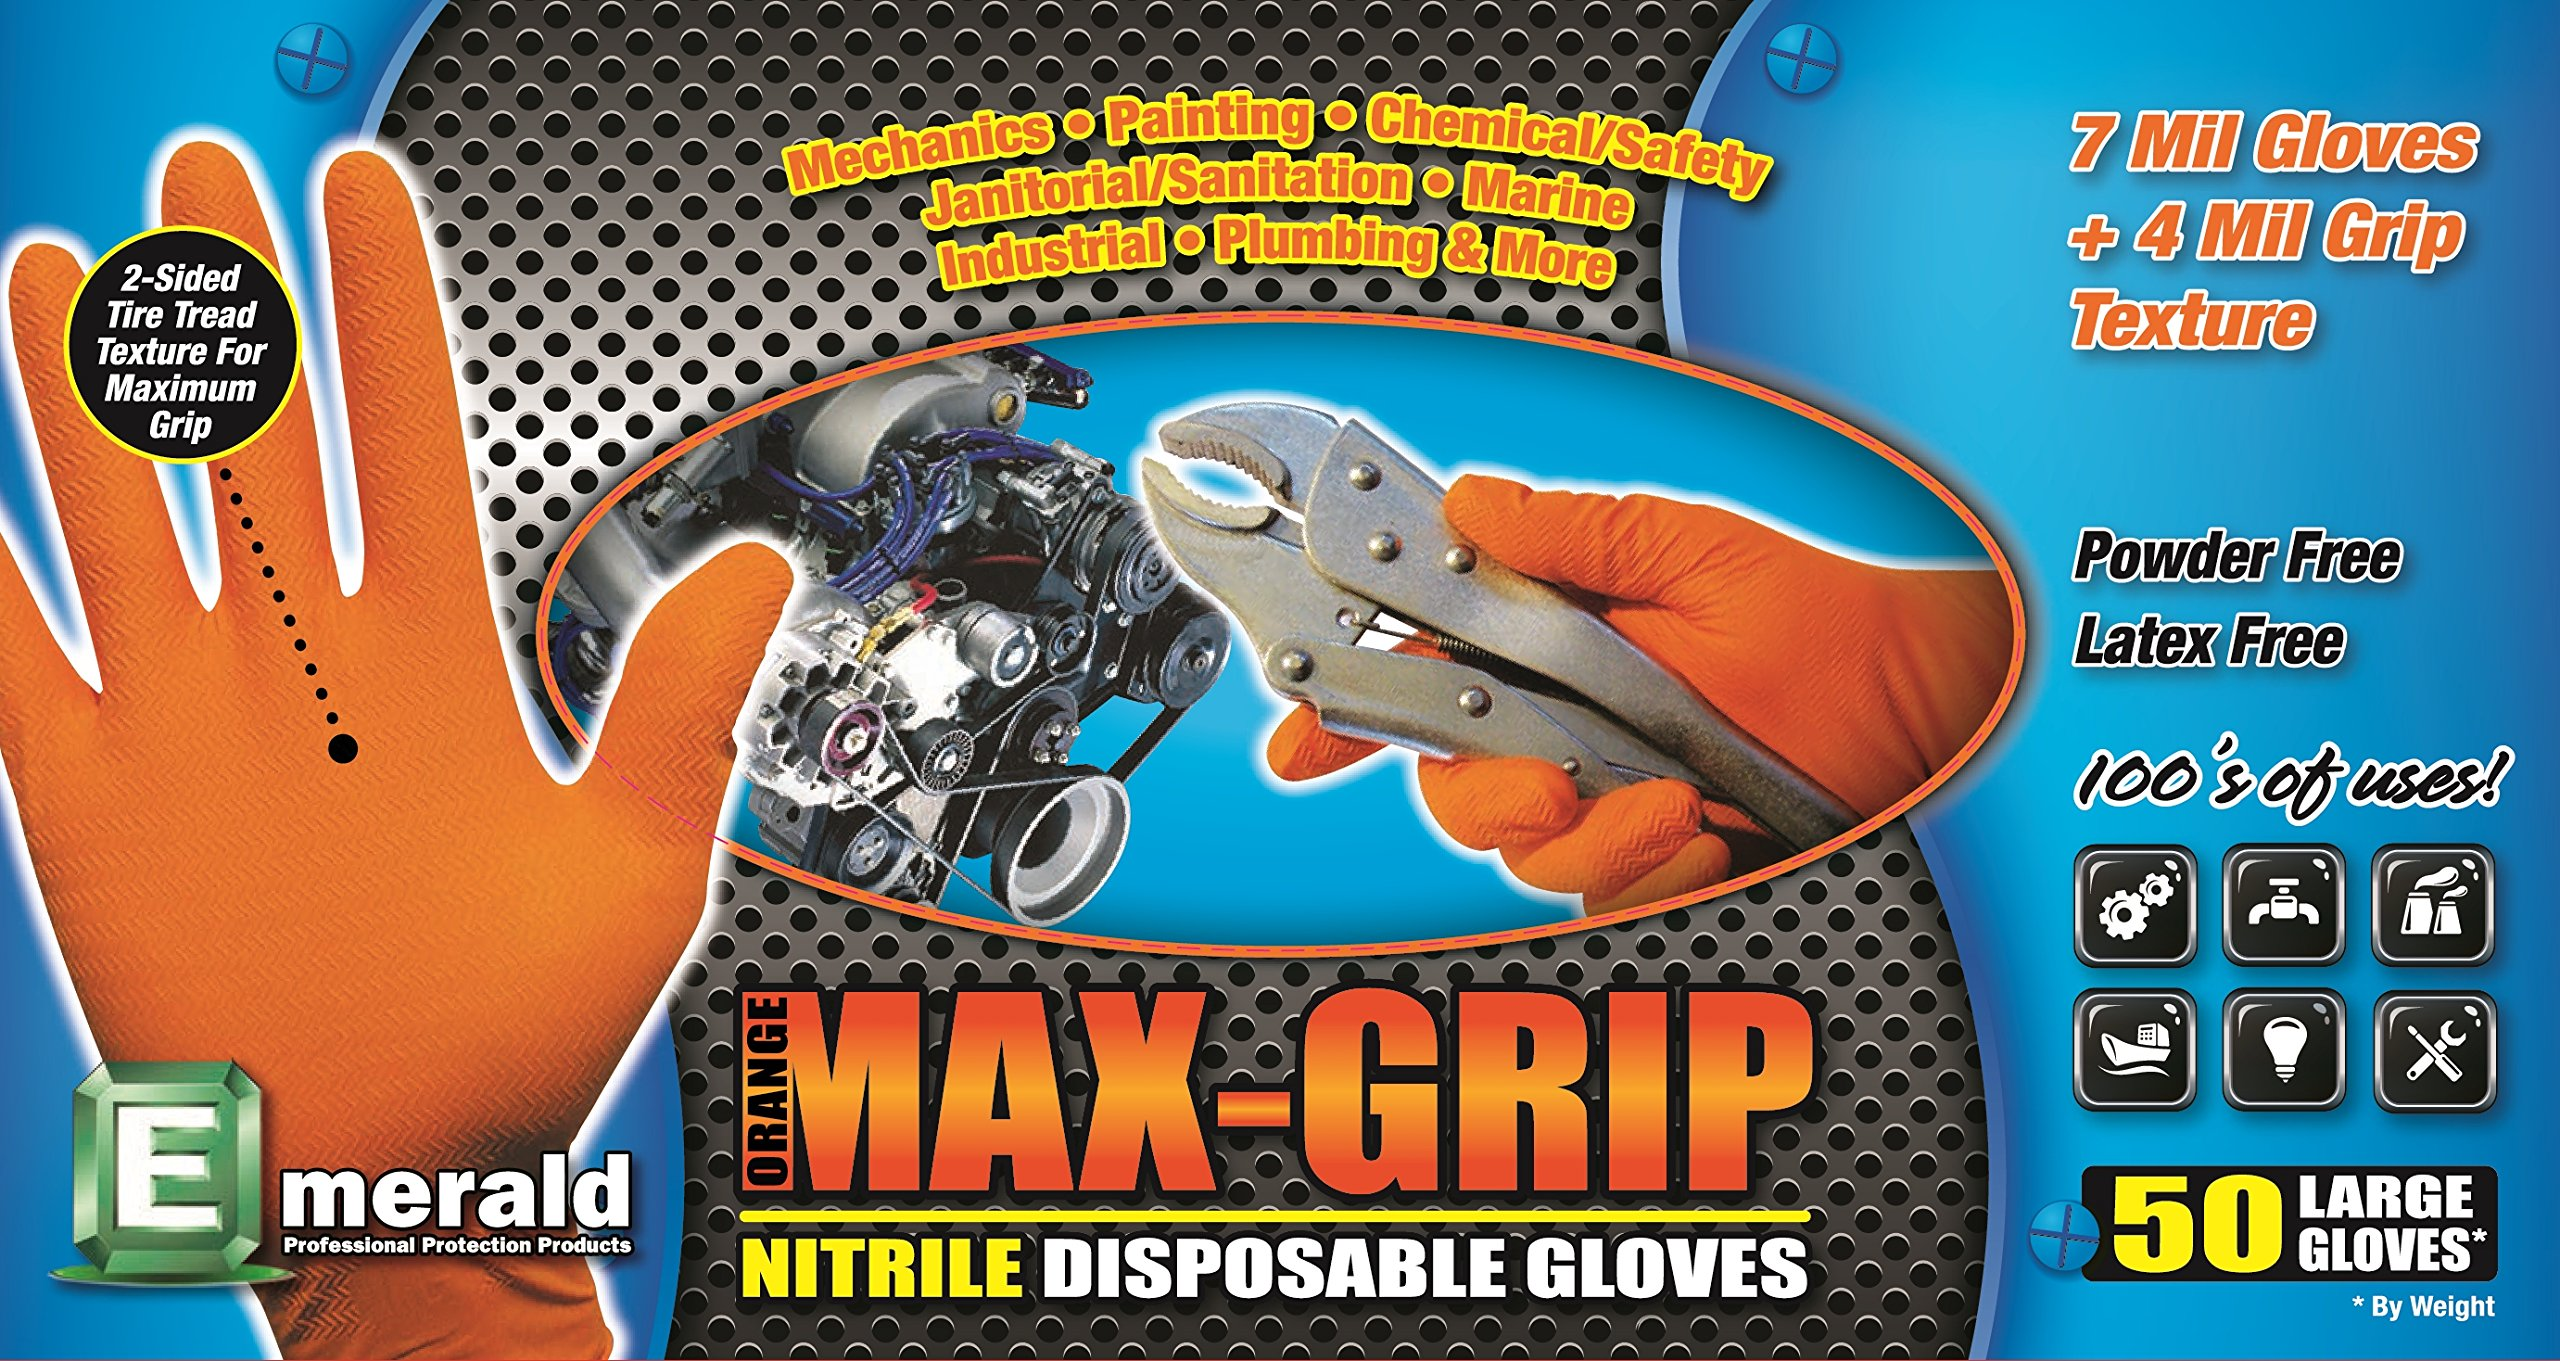 Emerald 03999 Orange MAX-Grip Powder Free Nitrile Glove 7 Mil Disposable with Beaded Cuff. 50 Glovesper Box, 10 Boxes, Total 500 Gloves Size Medium, by Emerald